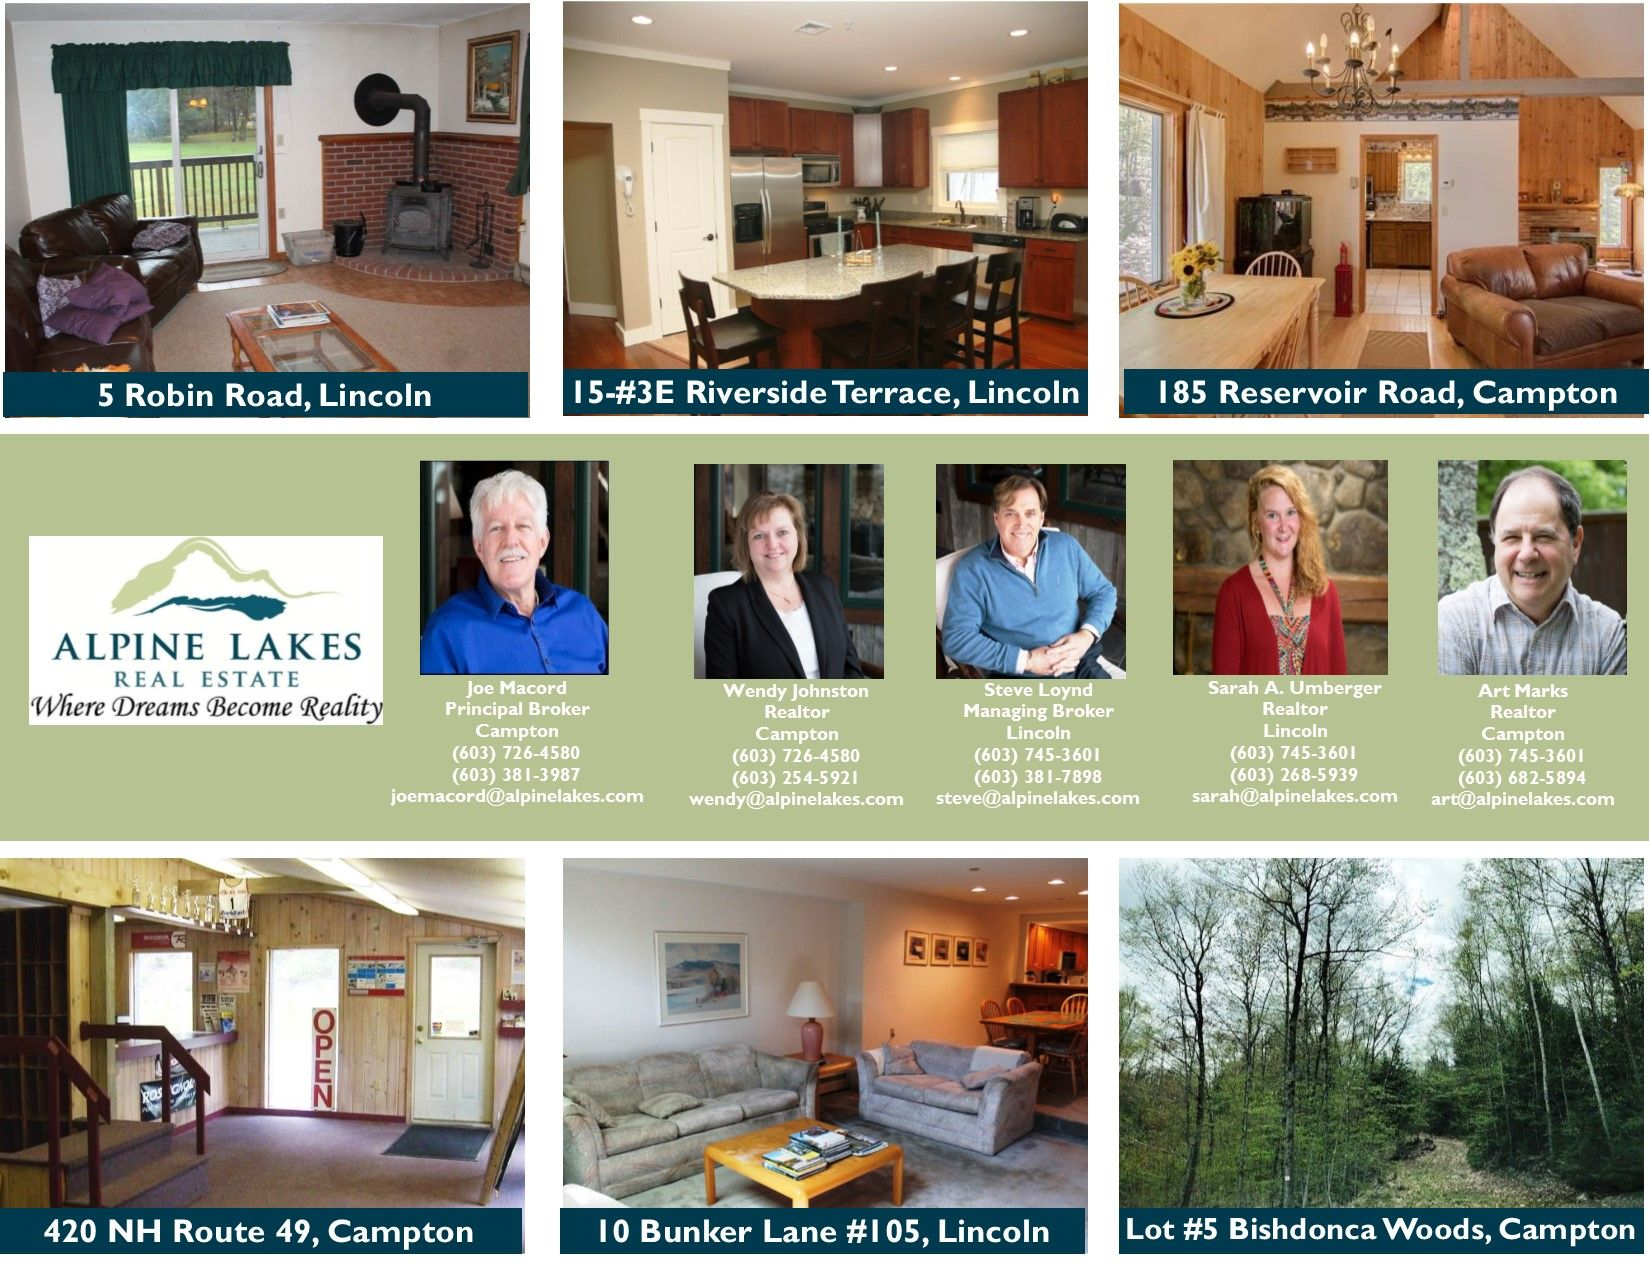 Mls Search Results Alpine Lakes Real Estate Lake Real Estate Riverside Terrace Real Estate